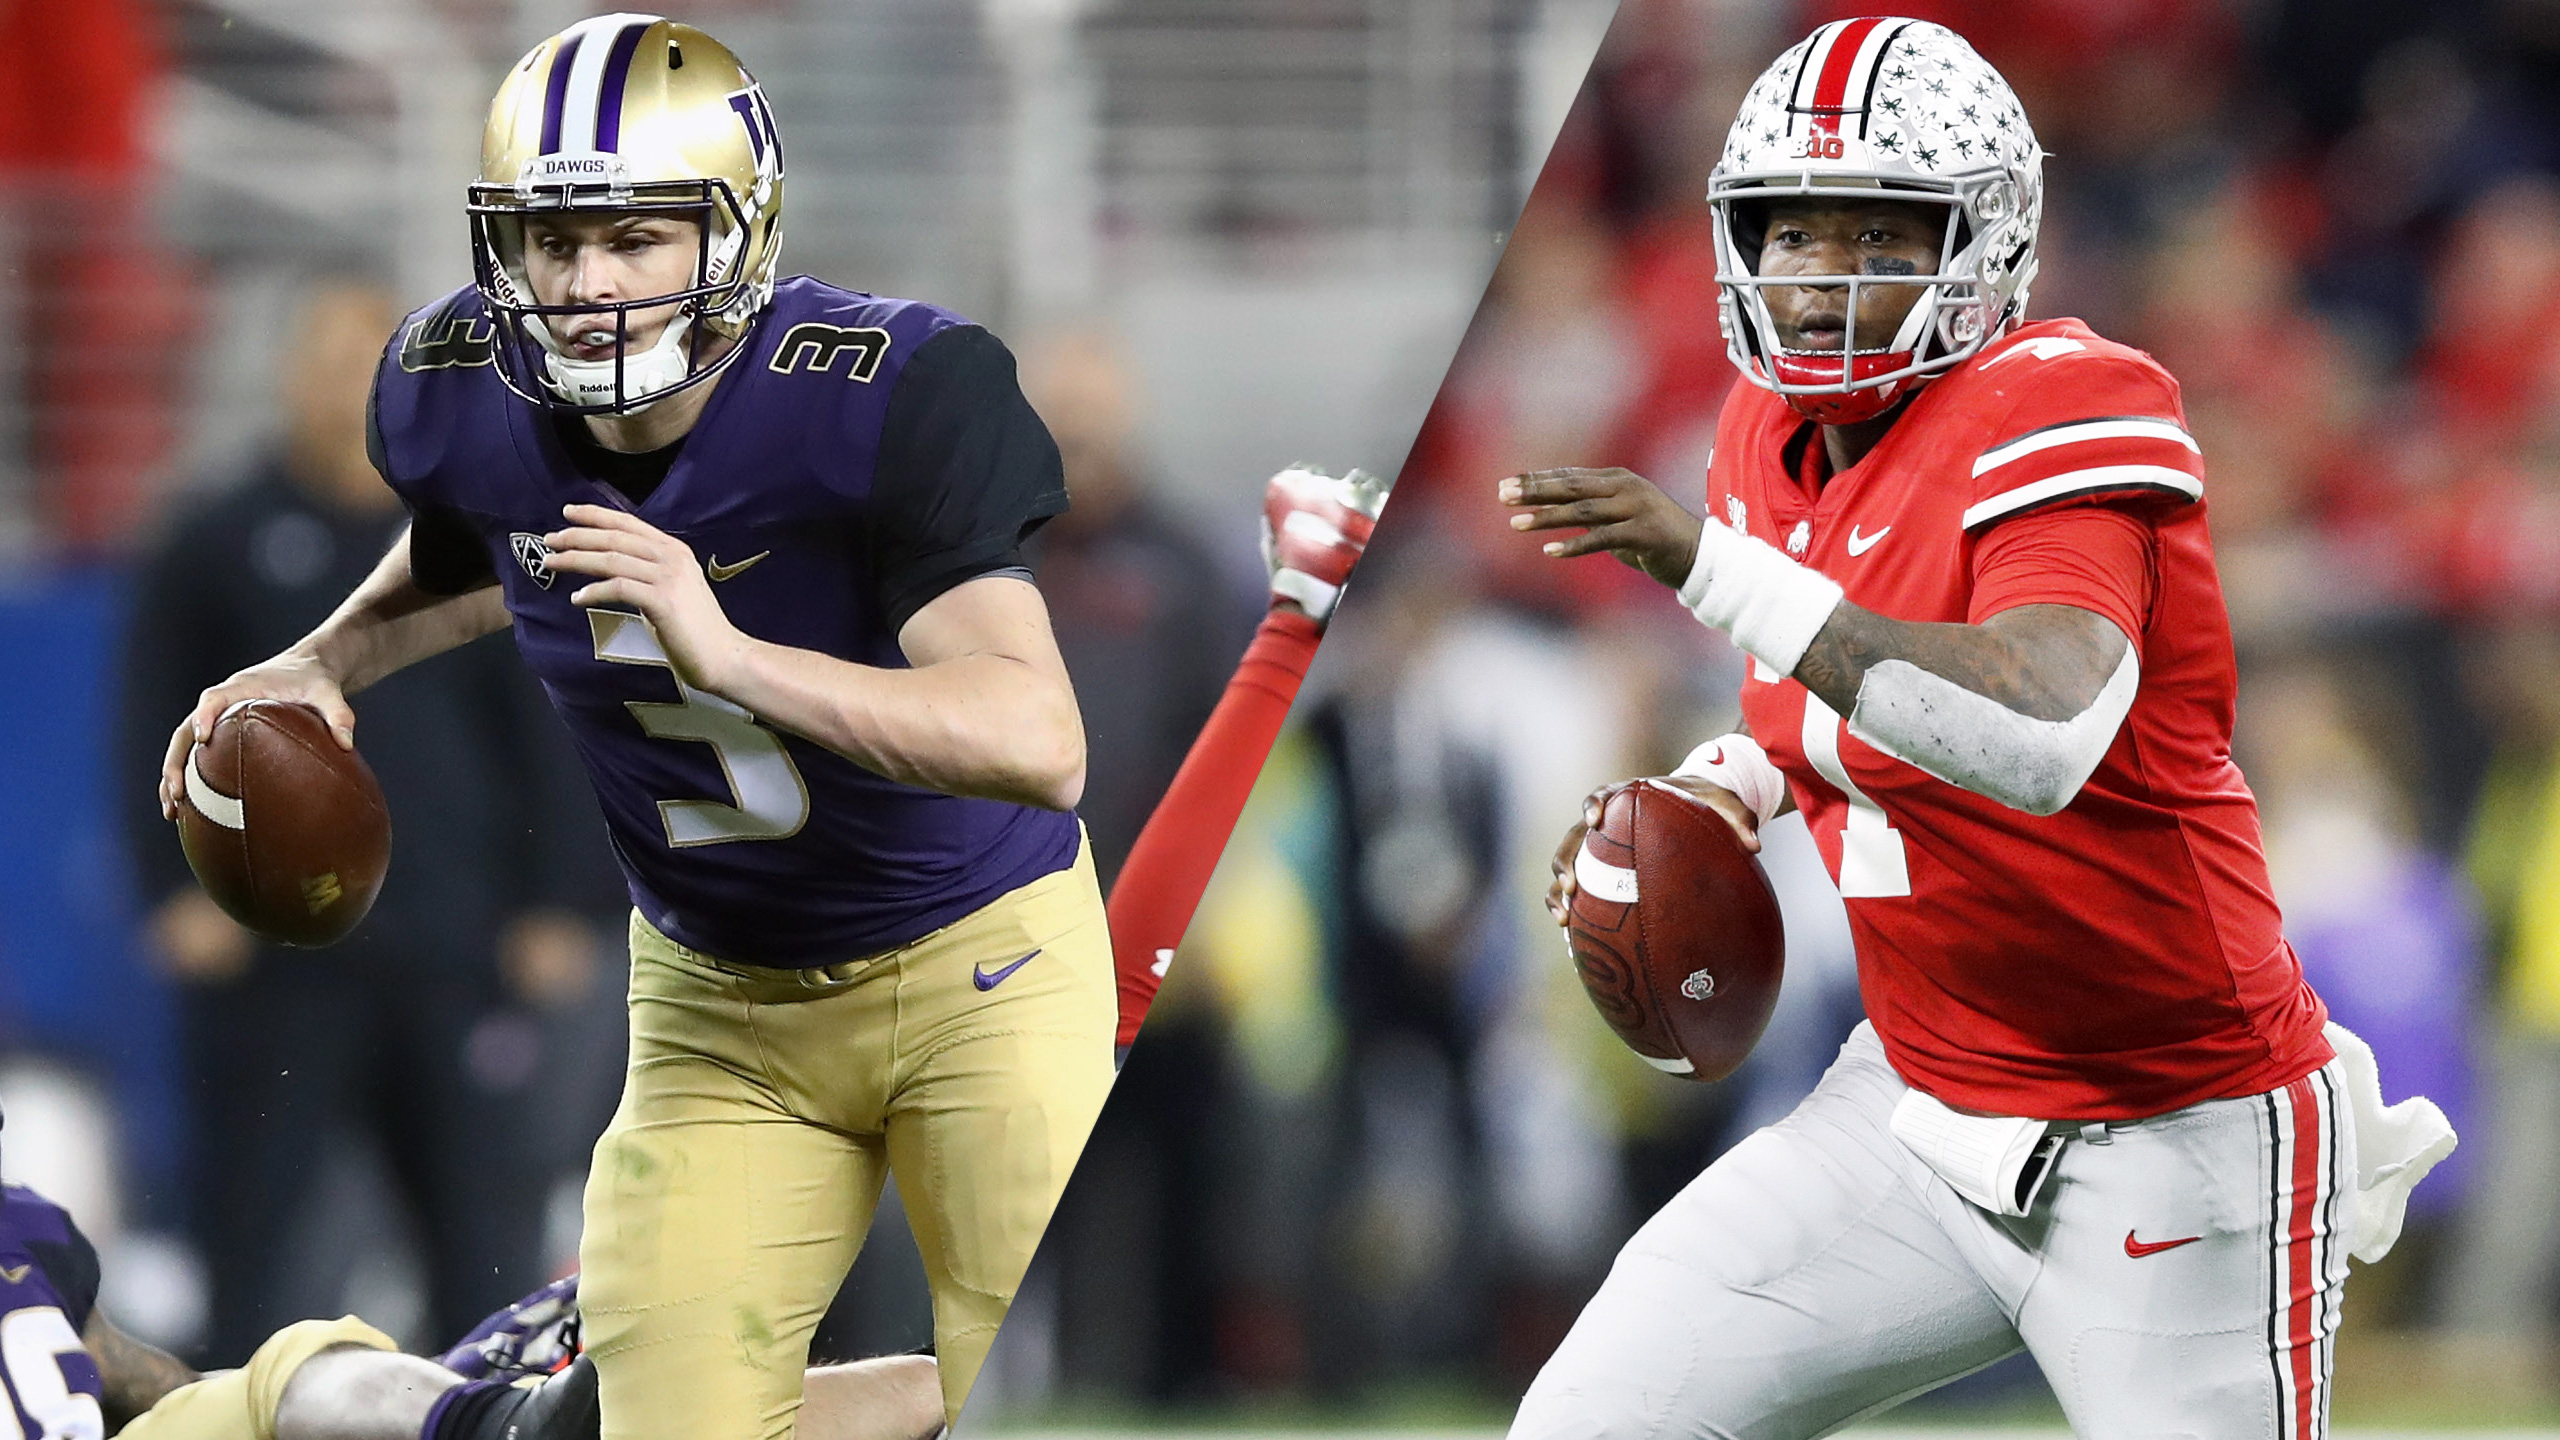 #9 Washington vs. #6 Ohio State (re-air)